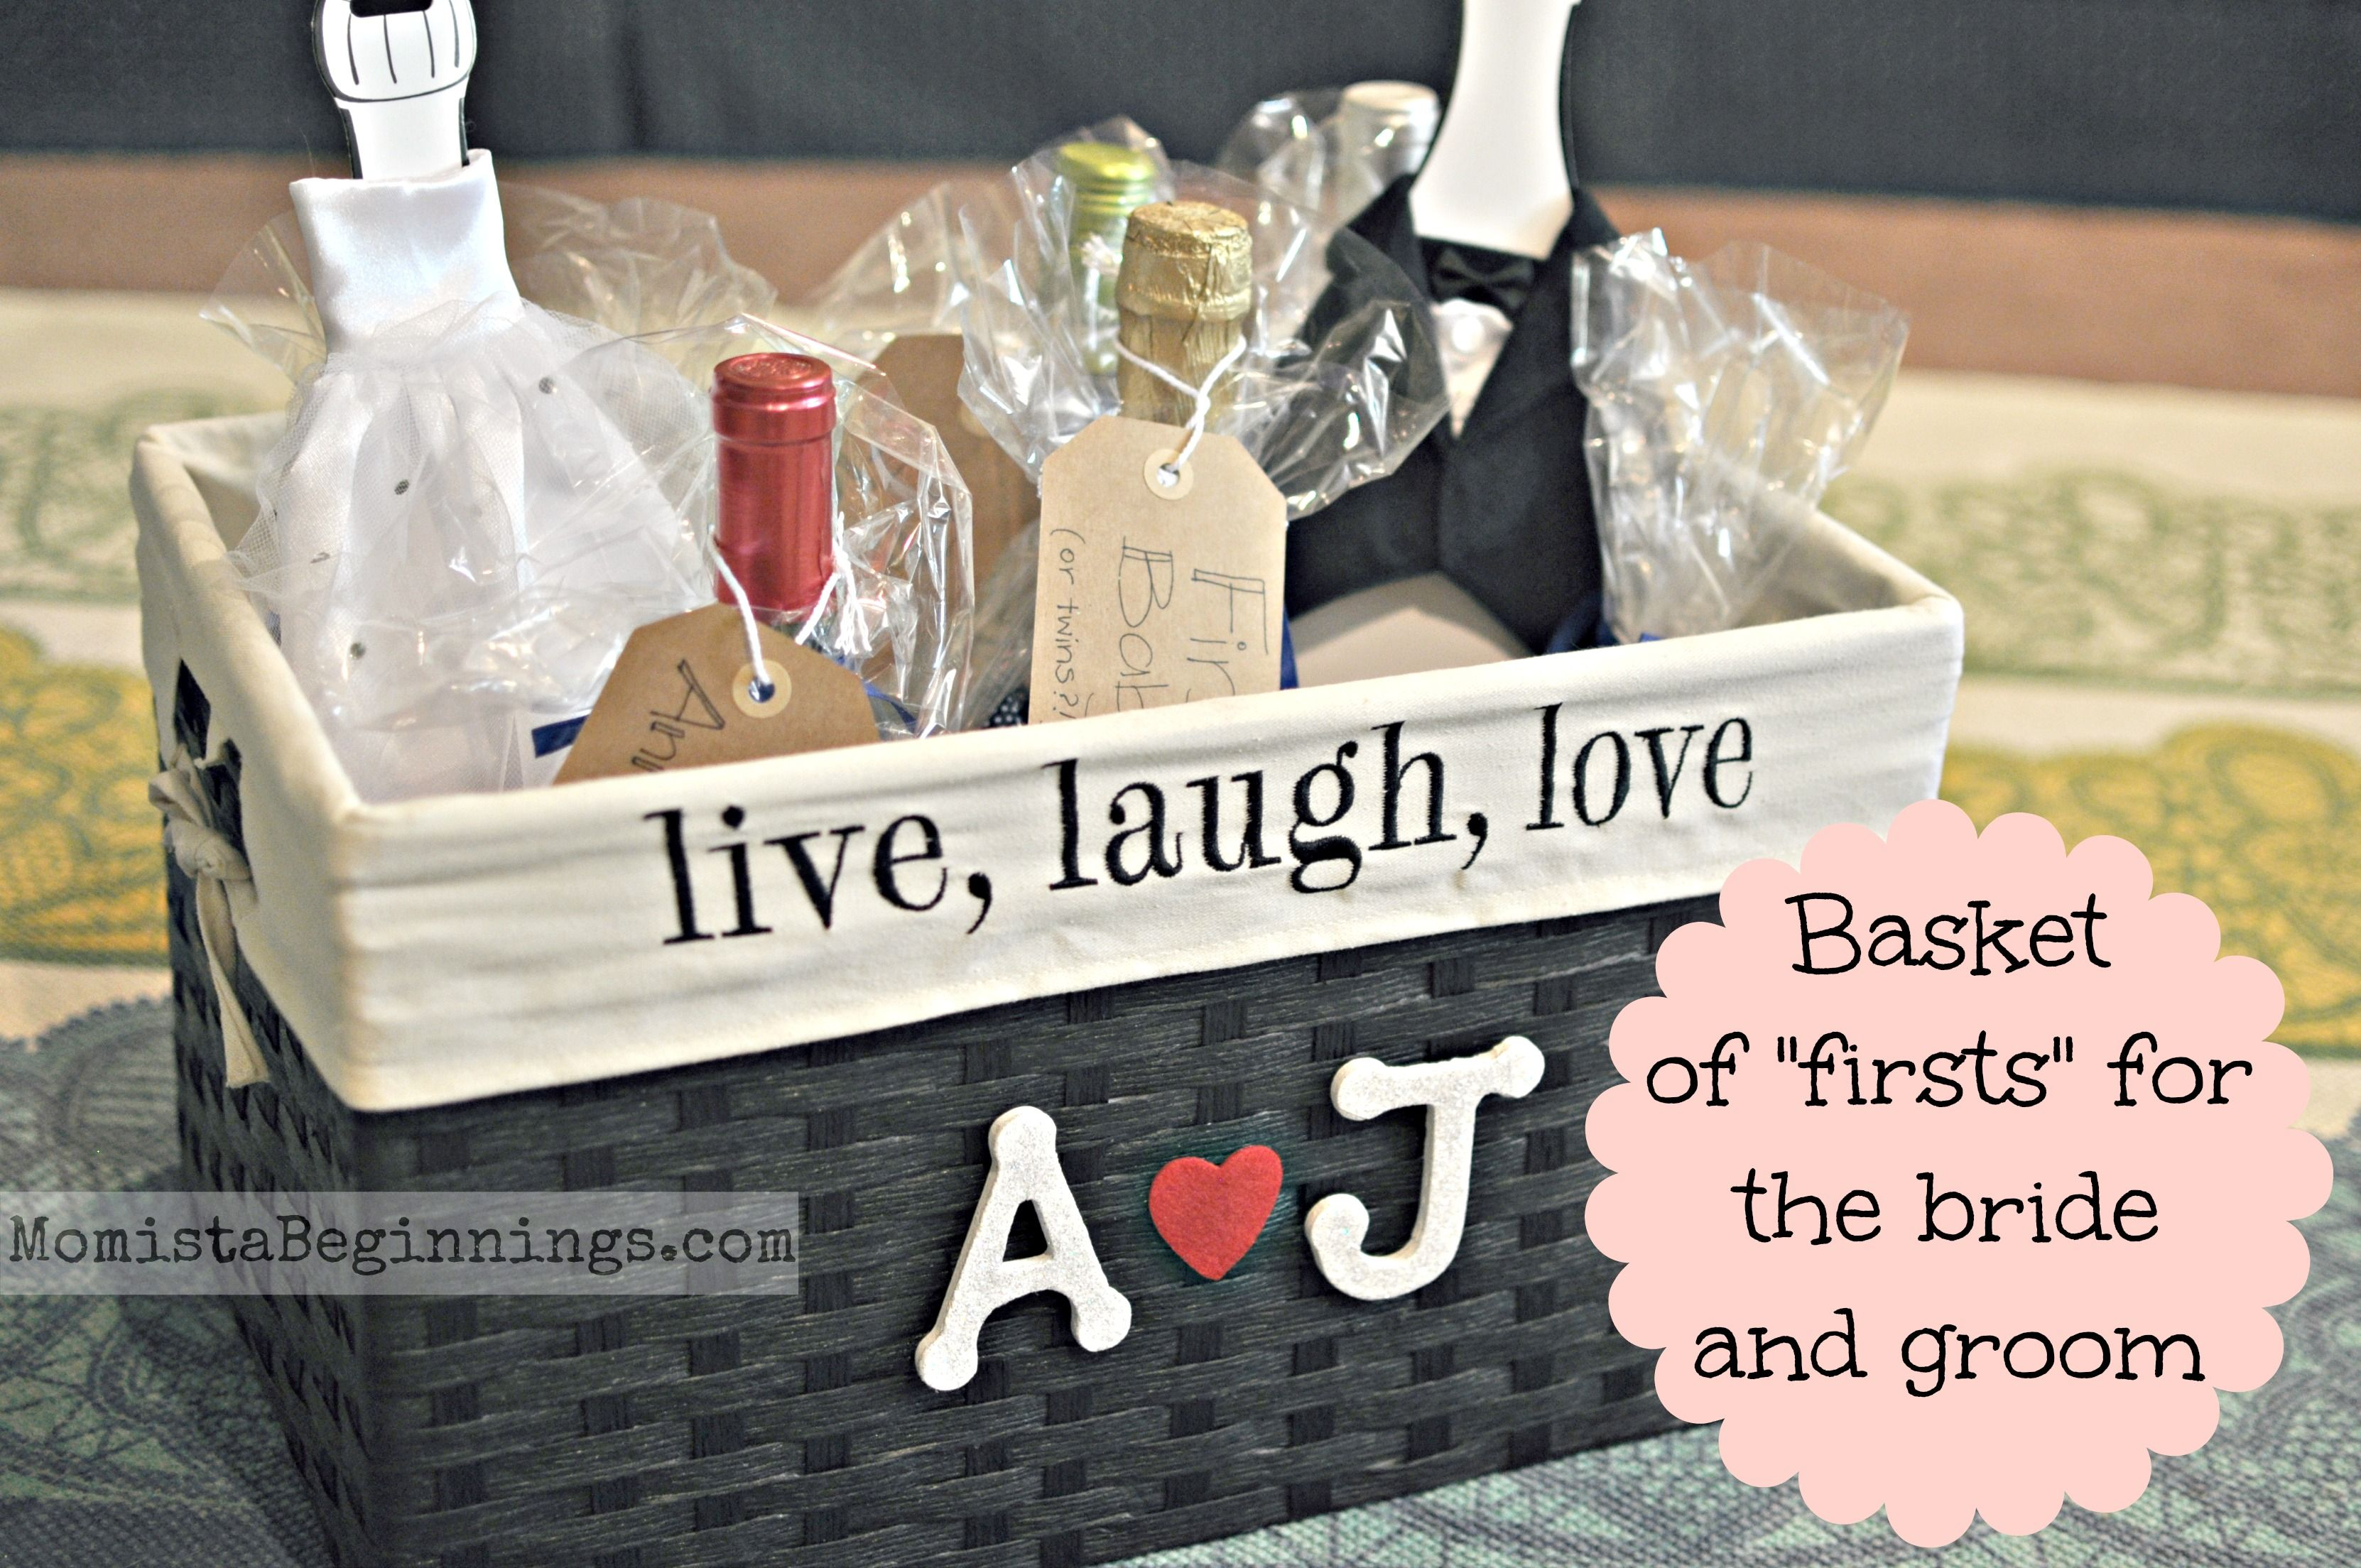 Bridal Shower Gifts Diy : bridal shower gifts bridal gifts bridal showers gift basket ideas gift ...